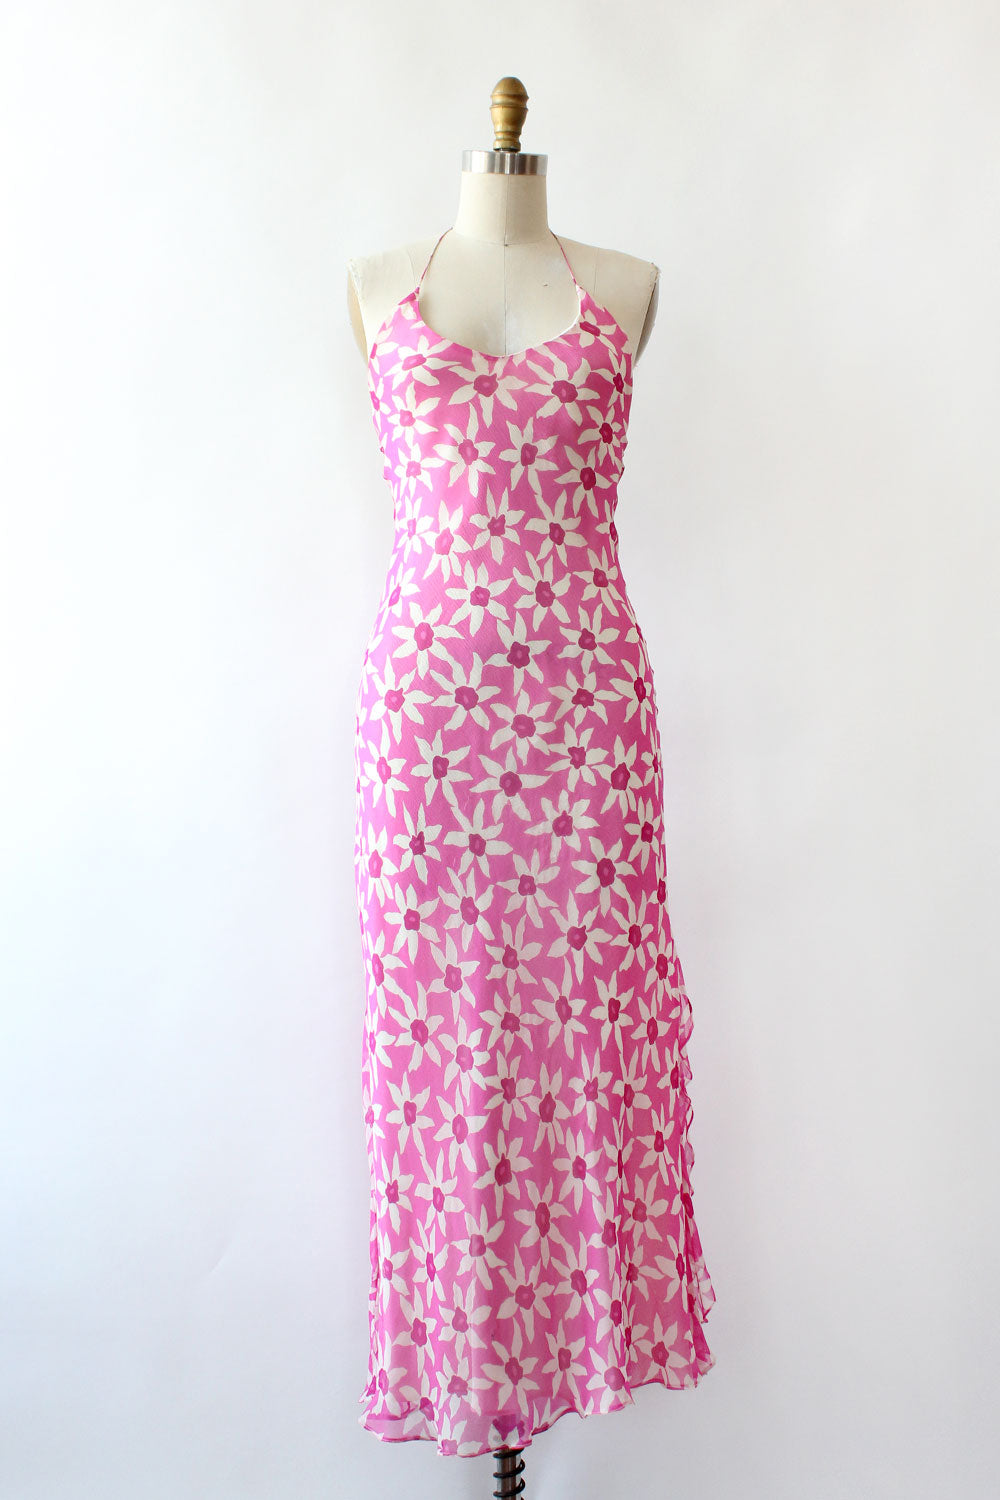 Ralph Lauren Fuchsia Silk Bias Dress XS/S